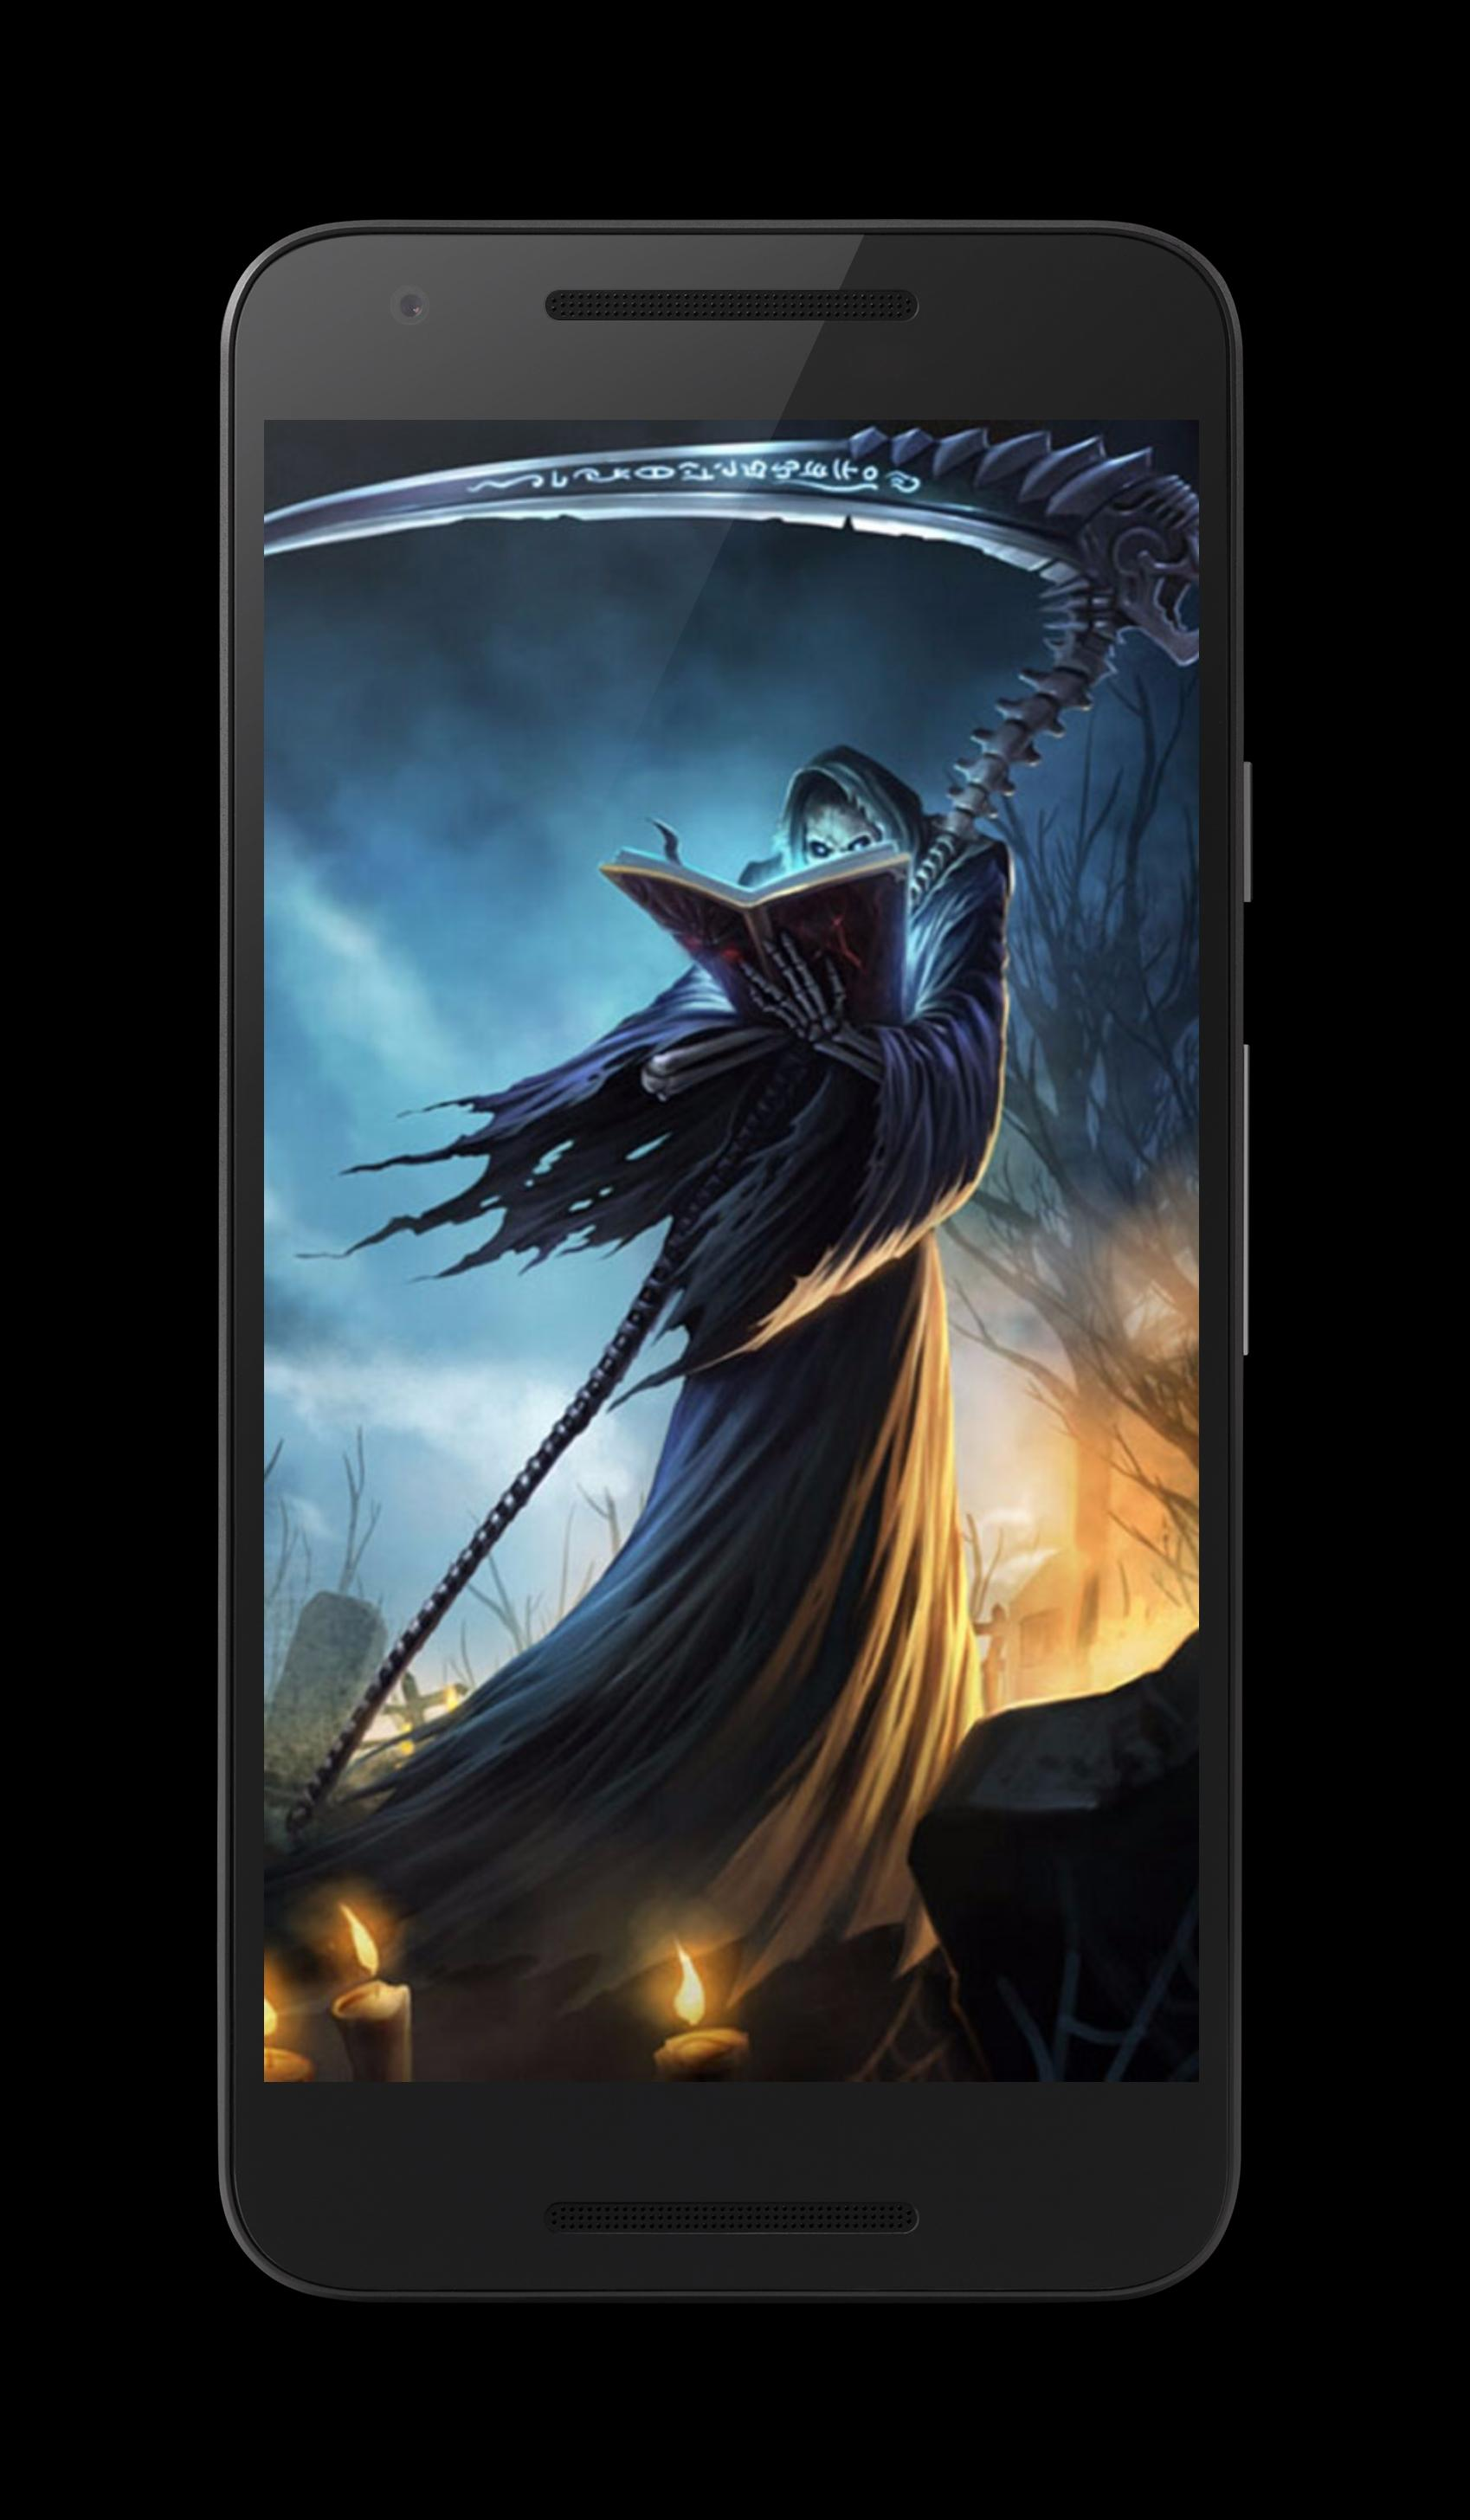 Grim Reaper Wallpapers 4k For Android Apk Download